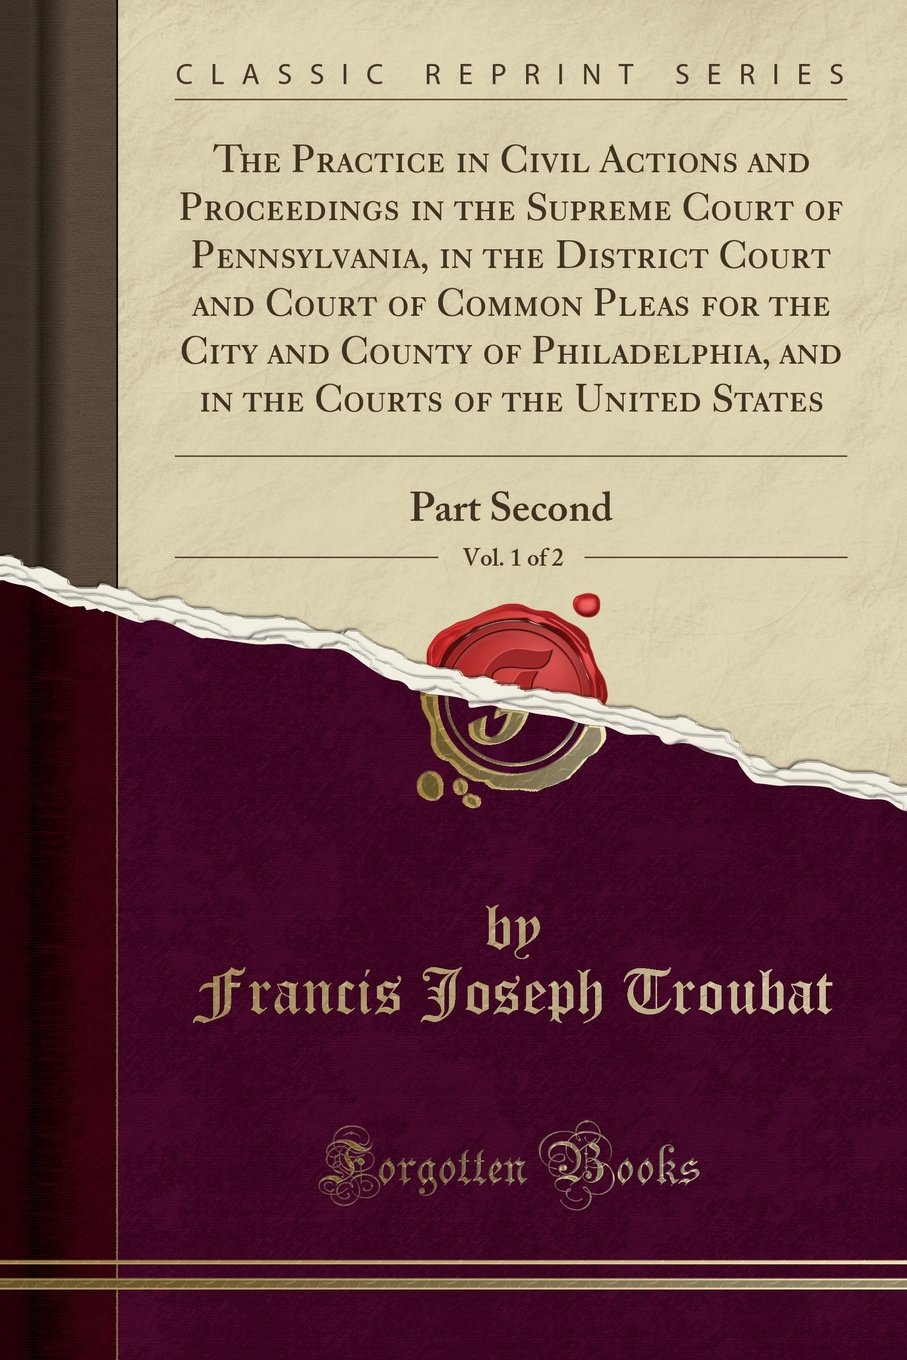 Read Online The Practice in Civil Actions and Proceedings in the Supreme Court of Pennsylvania, in the District Court and Court of Common Pleas for the City and ... the United States, Vol. 1 of 2: Part Second ebook